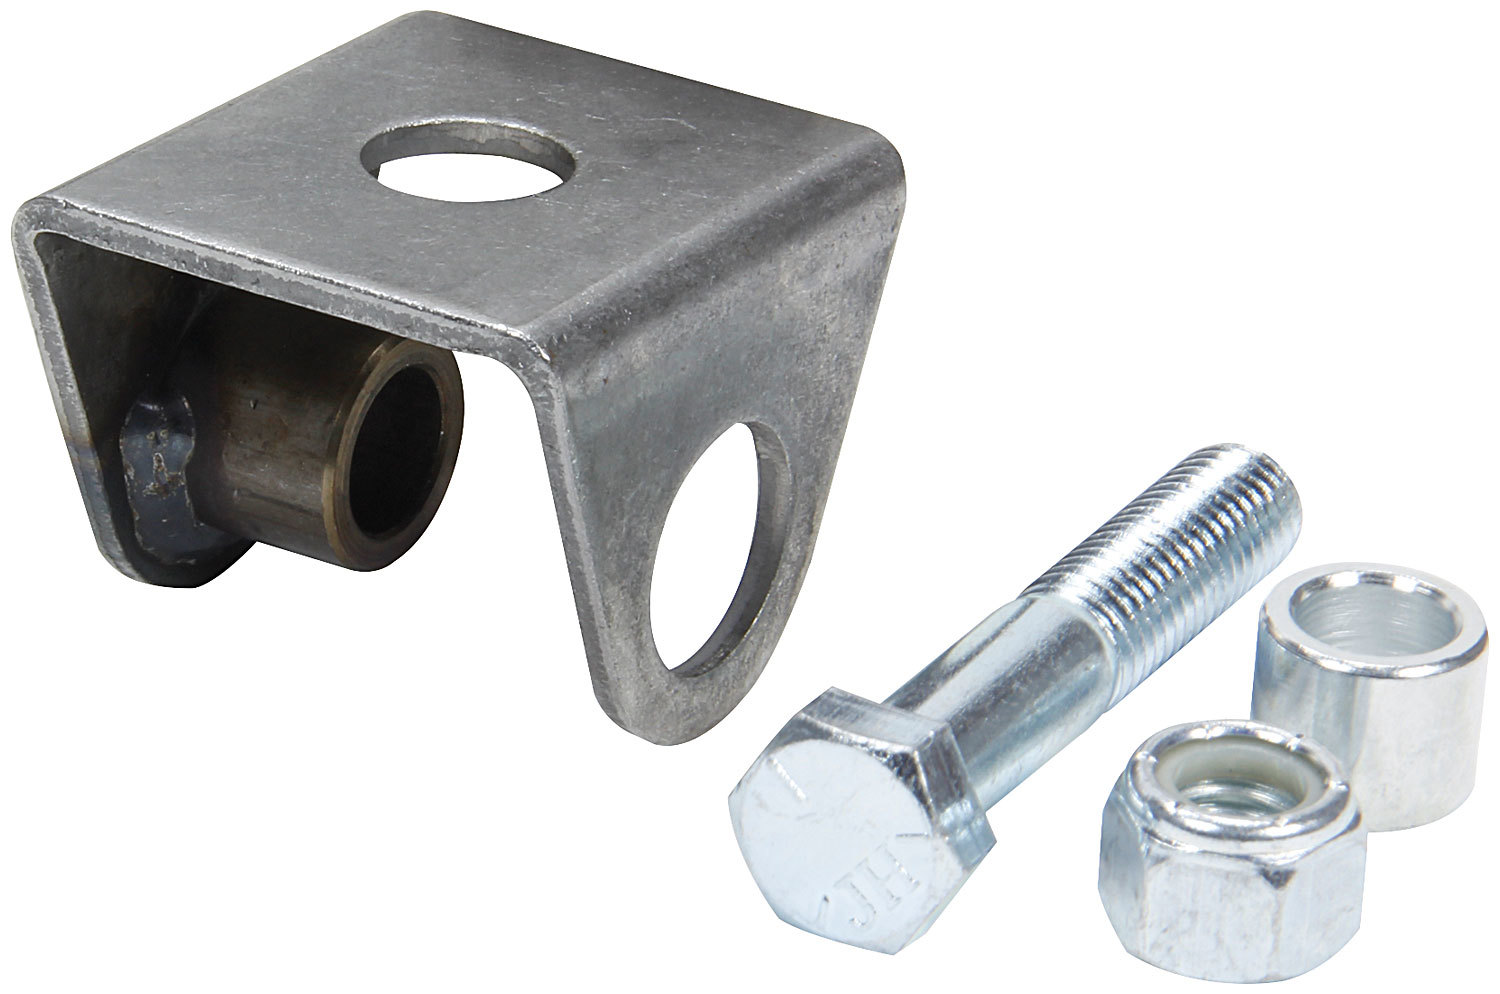 Allstar Performance 60106 Shock Mount, Wide, Weld-On, Flat Mount, Straight, Steel, Natural, Universal, Each